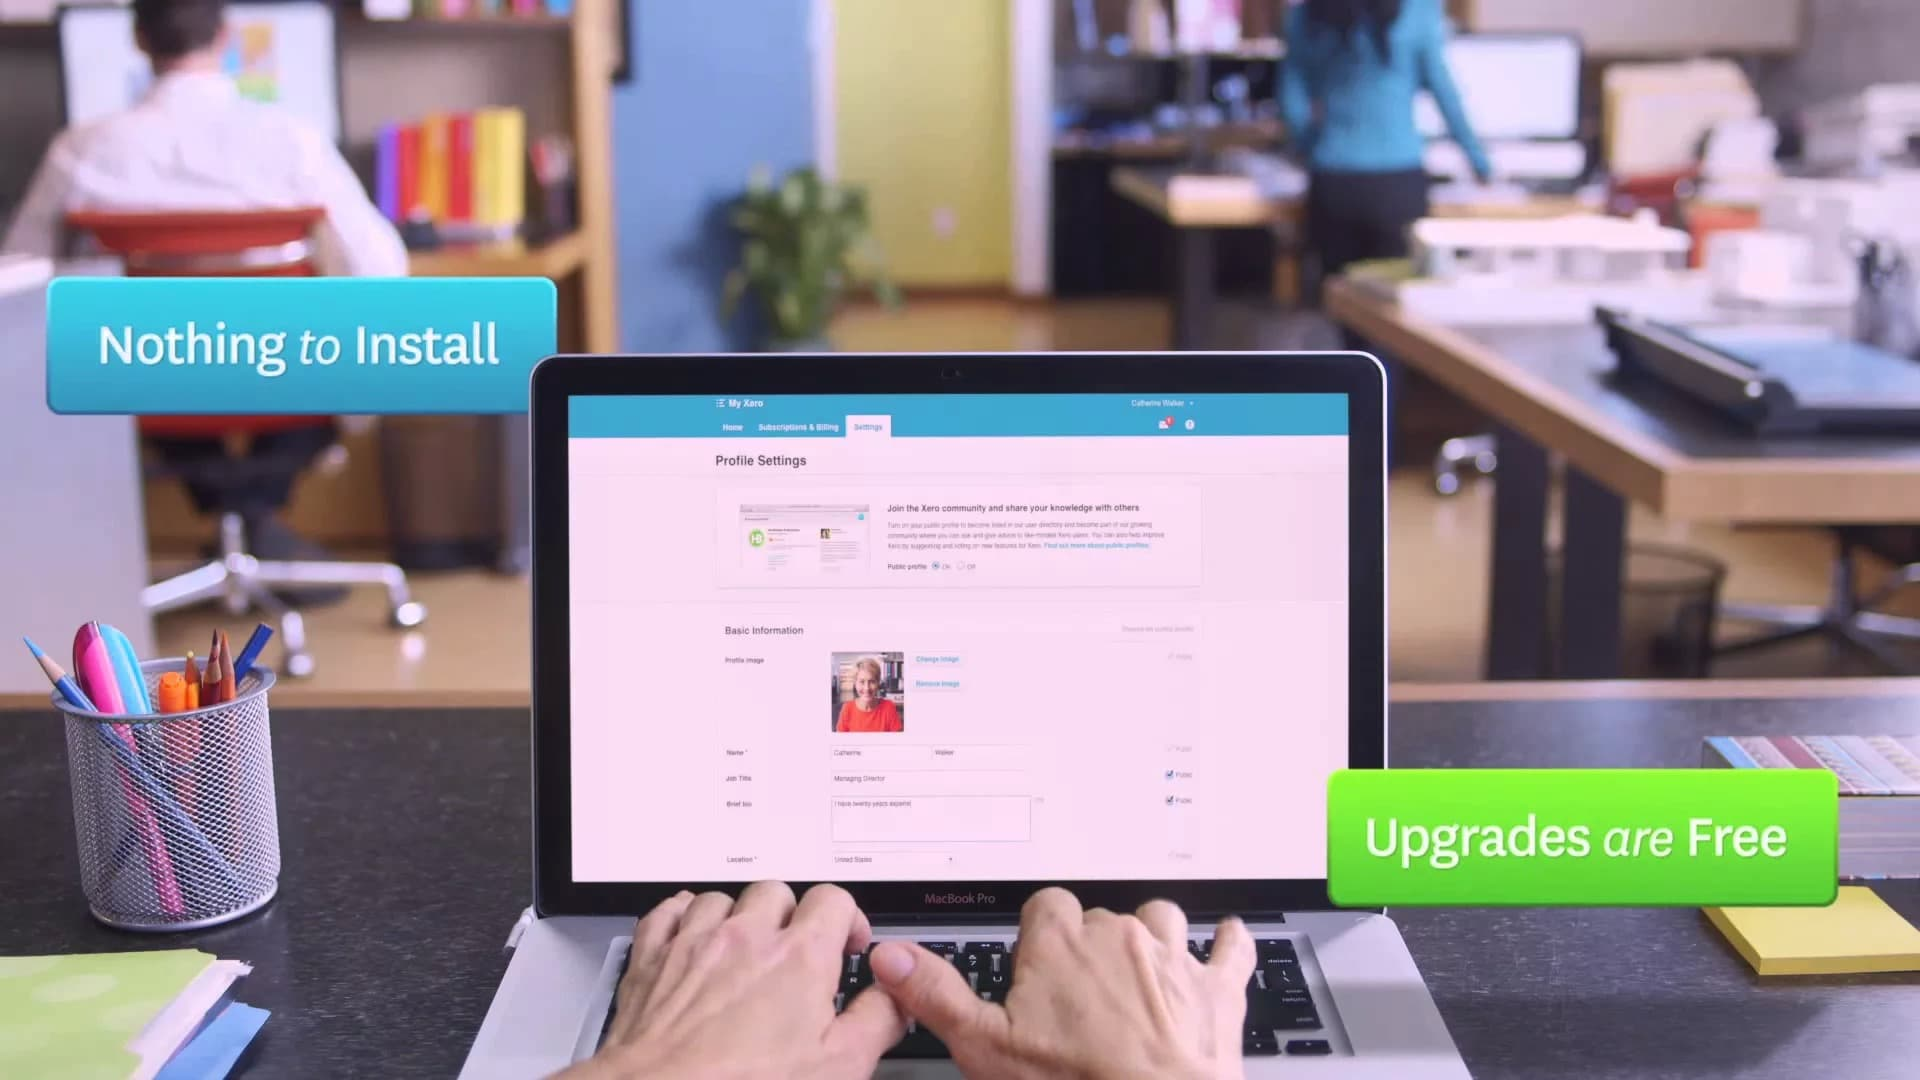 A preview image of a video about some of the features of Xero cloud accounting software